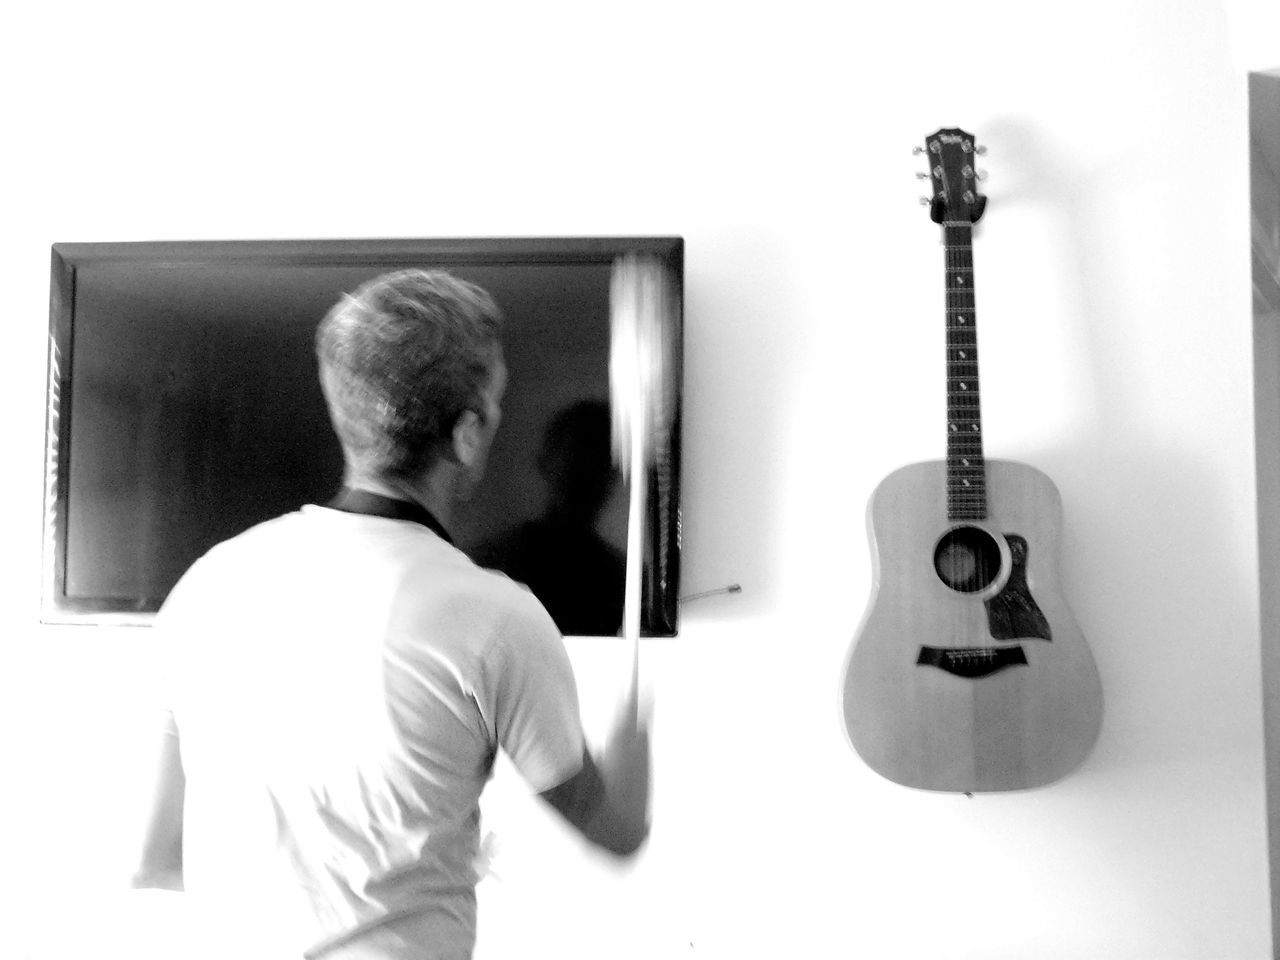 ~ Simplifying Life ~ Connection Person Technology Young Adult Monochrome Photography Blackandwhite White Wall Cleaning Dusting Indoors  Guitar Television Home Sweet Home Home Interior Simplicity Minimalism Man Brisk Life In Motion Home Decor Blurred Motion Motion Blur Busy Darkness And Light Household Chores